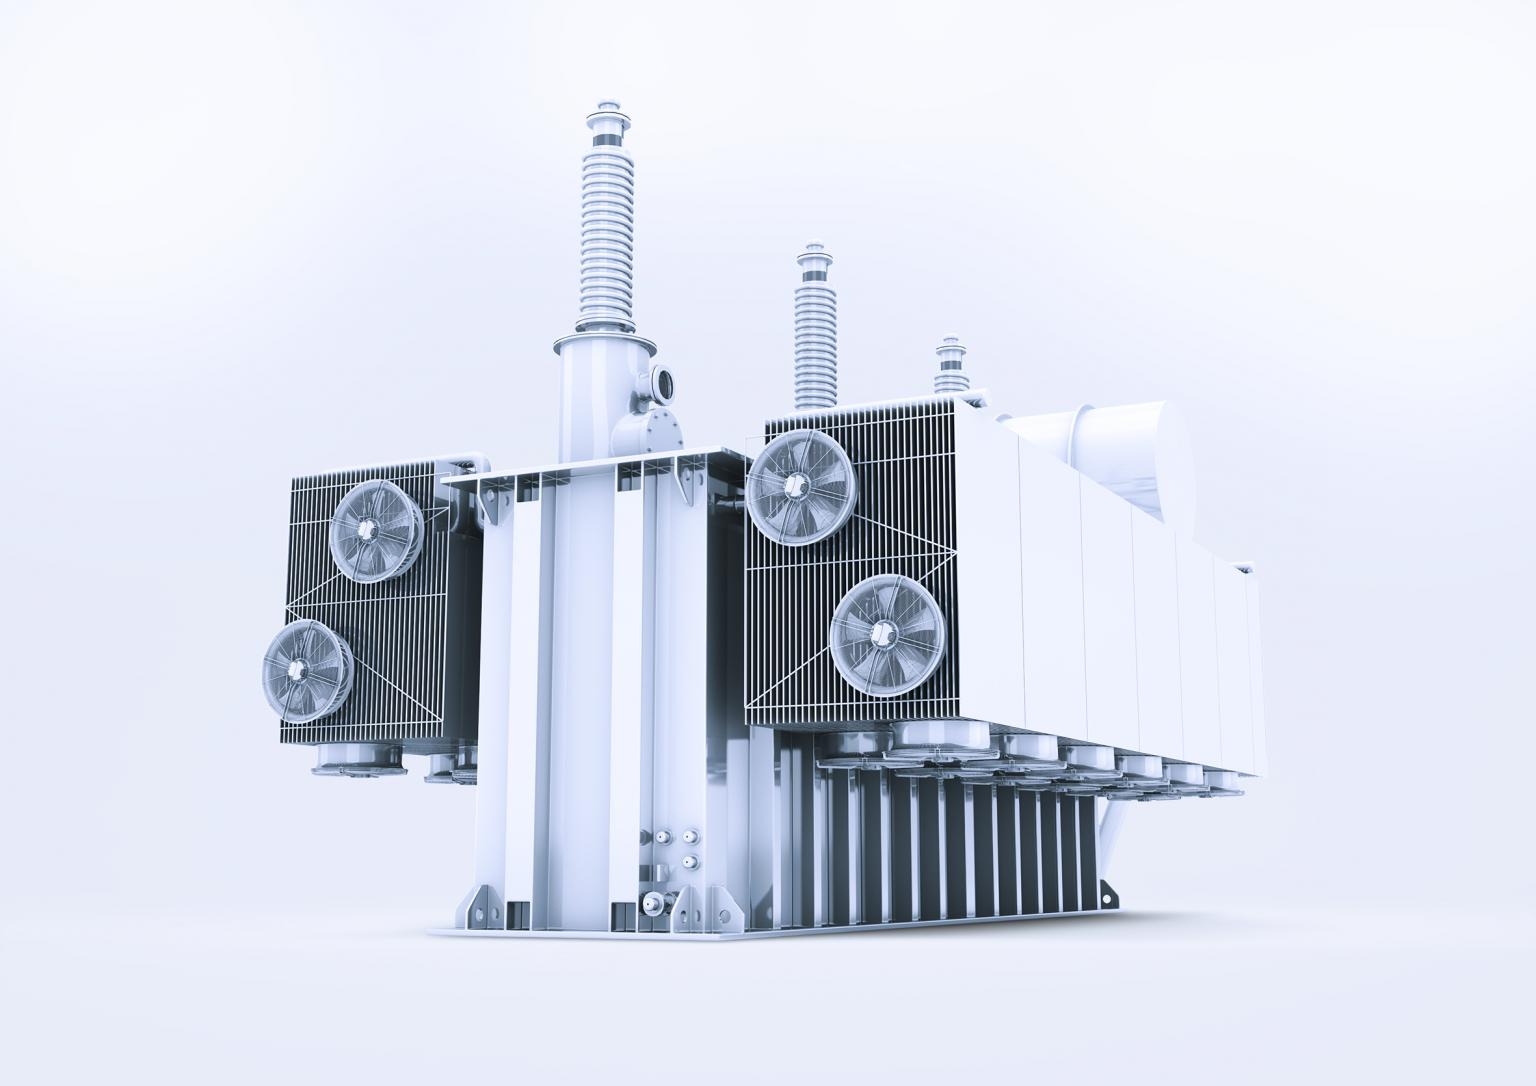 The fans used in the cooling systems of large transformers must withstand harsh conditions. Here, robust technology that works reliably for decades and does not require maintenance is in demand